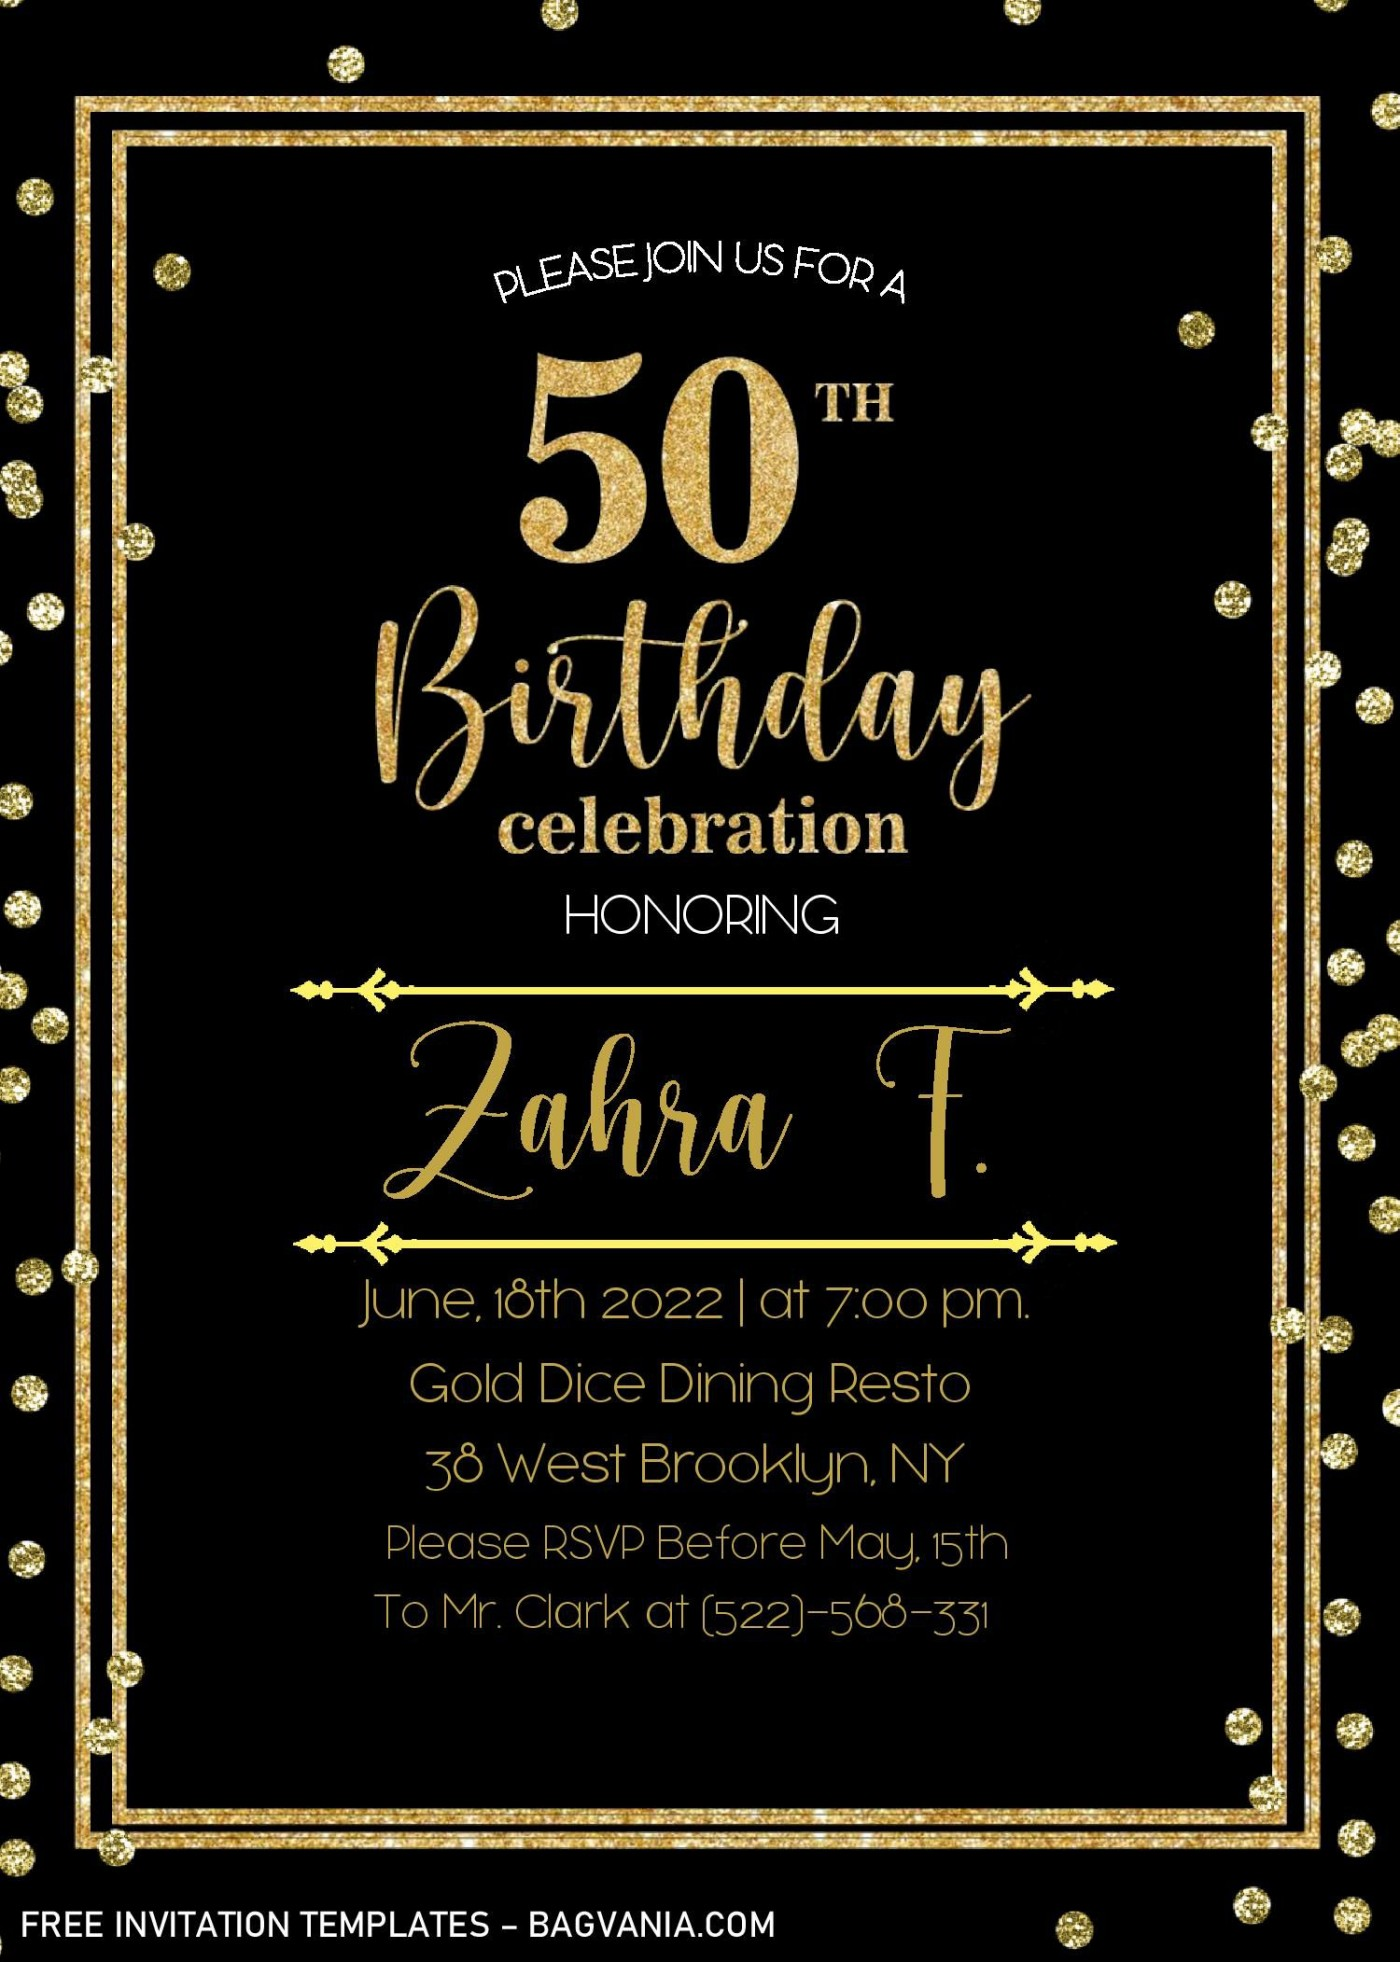 002 Striking Microsoft Word 50th Birthday Invitation Template Image  Wedding Anniversary Editable1400